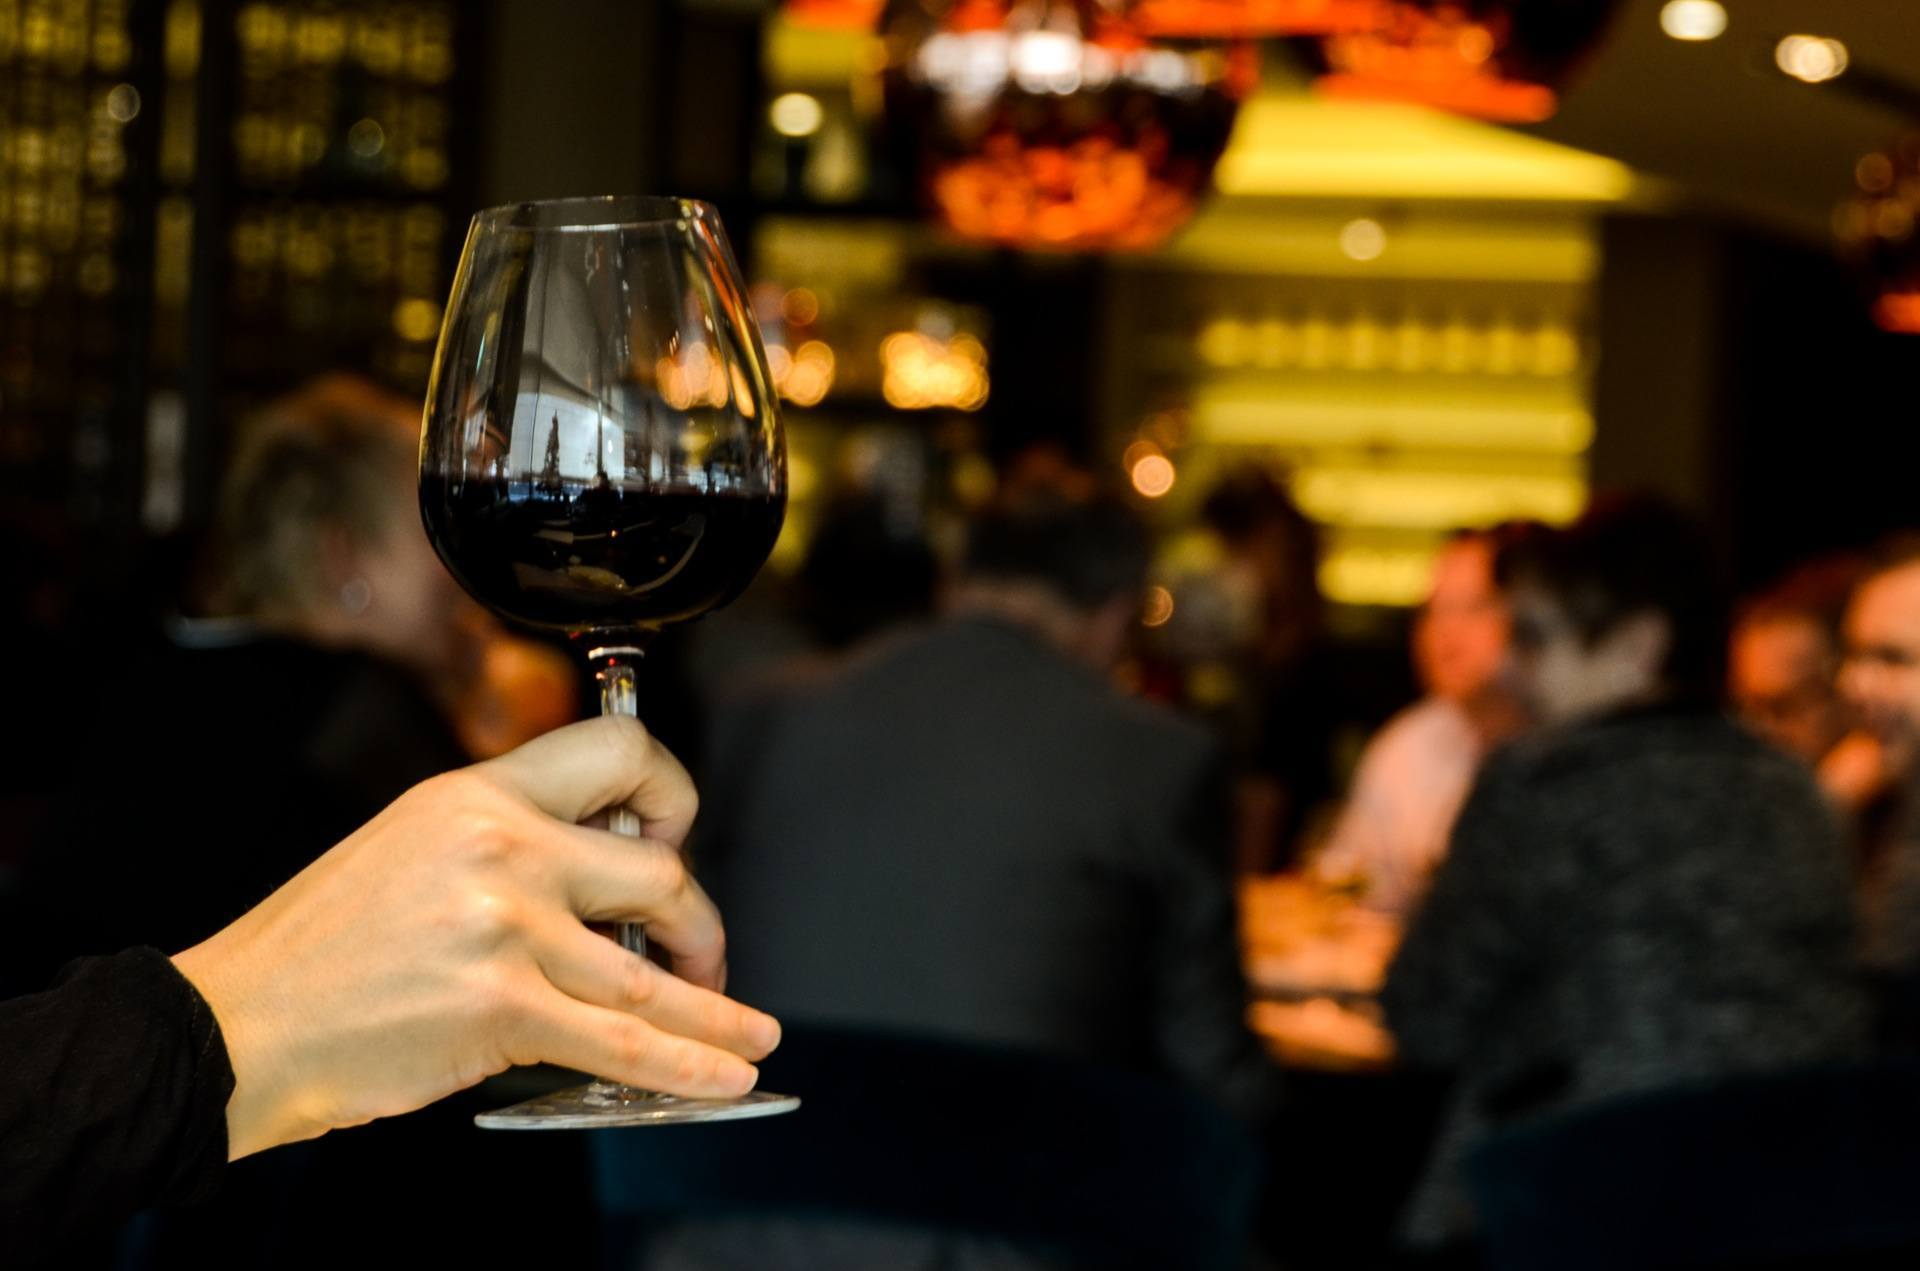 Networking event, connecting over wine